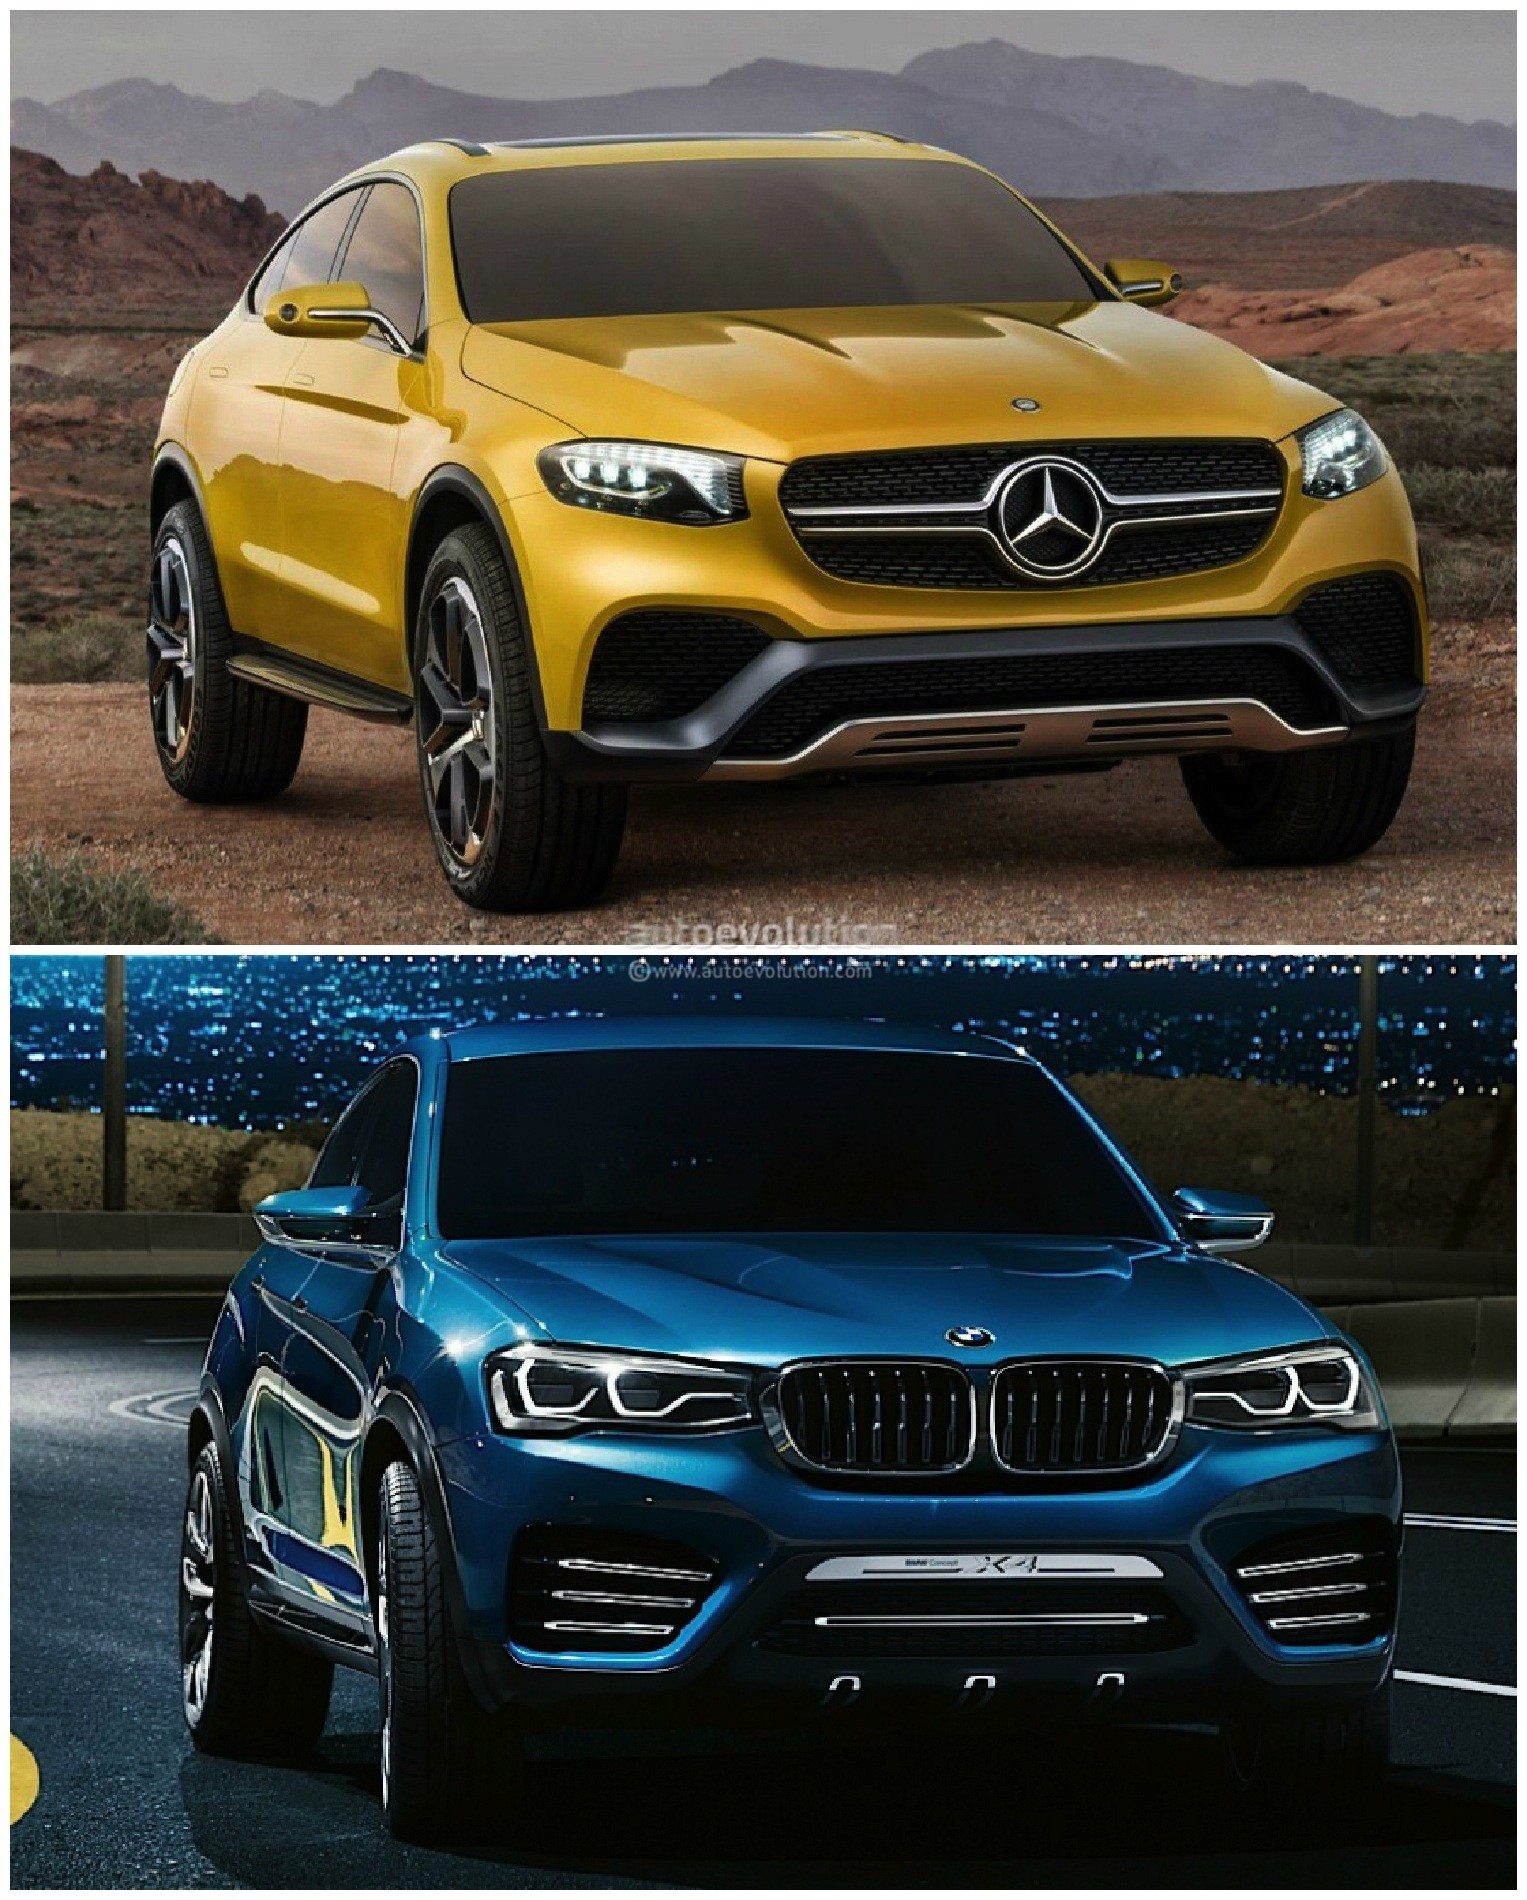 Mercedes Glc Coupe Vs Bmw X4 The Sports Activity Coupe Battle Continues Autoevolution